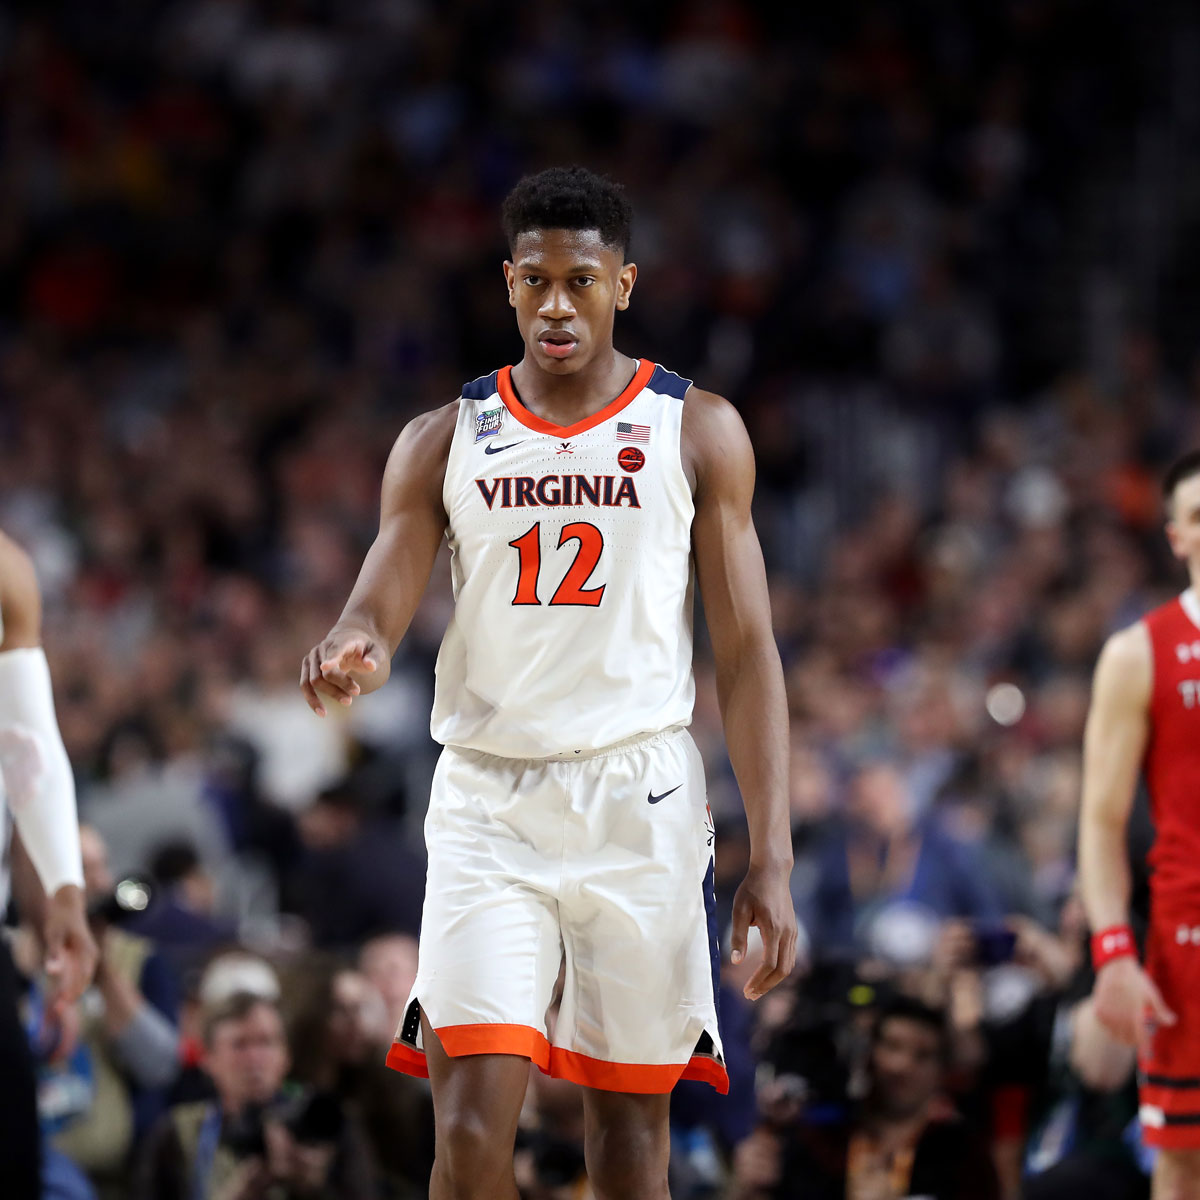 De'Andre Hunter #12 of the Virginia Cavaliers reacts against the Texas Tech Red Raiders in the first half during the 2019 NCAA men's Final Four National Championship game at U.S. Bank Stadium on April 08, 2019 in Minneapolis, Minnesota.